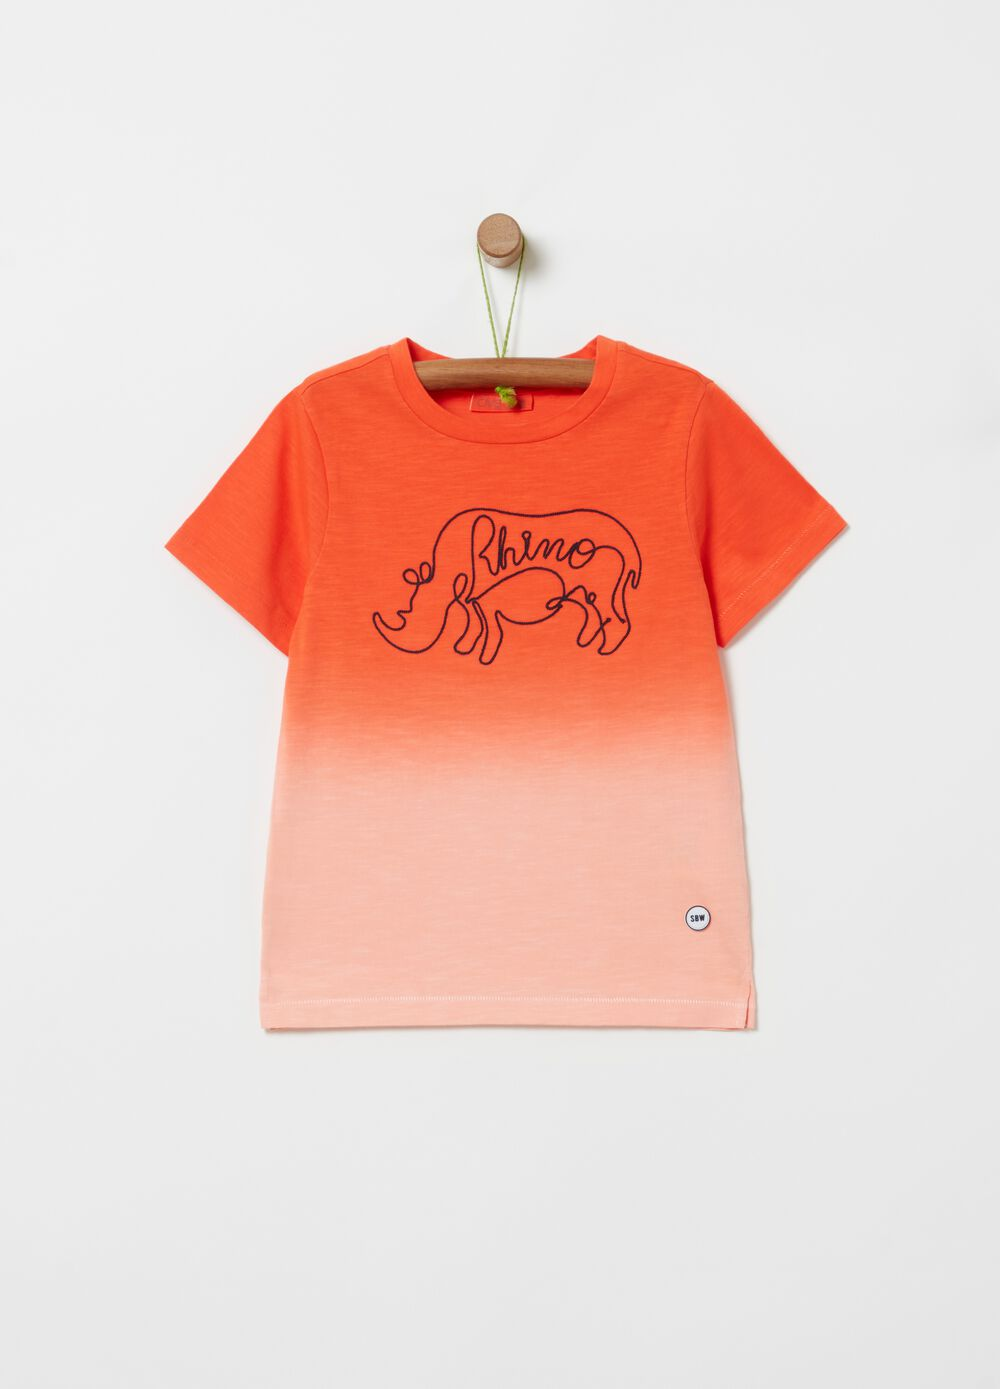 100% organic cotton degradé T-shirt